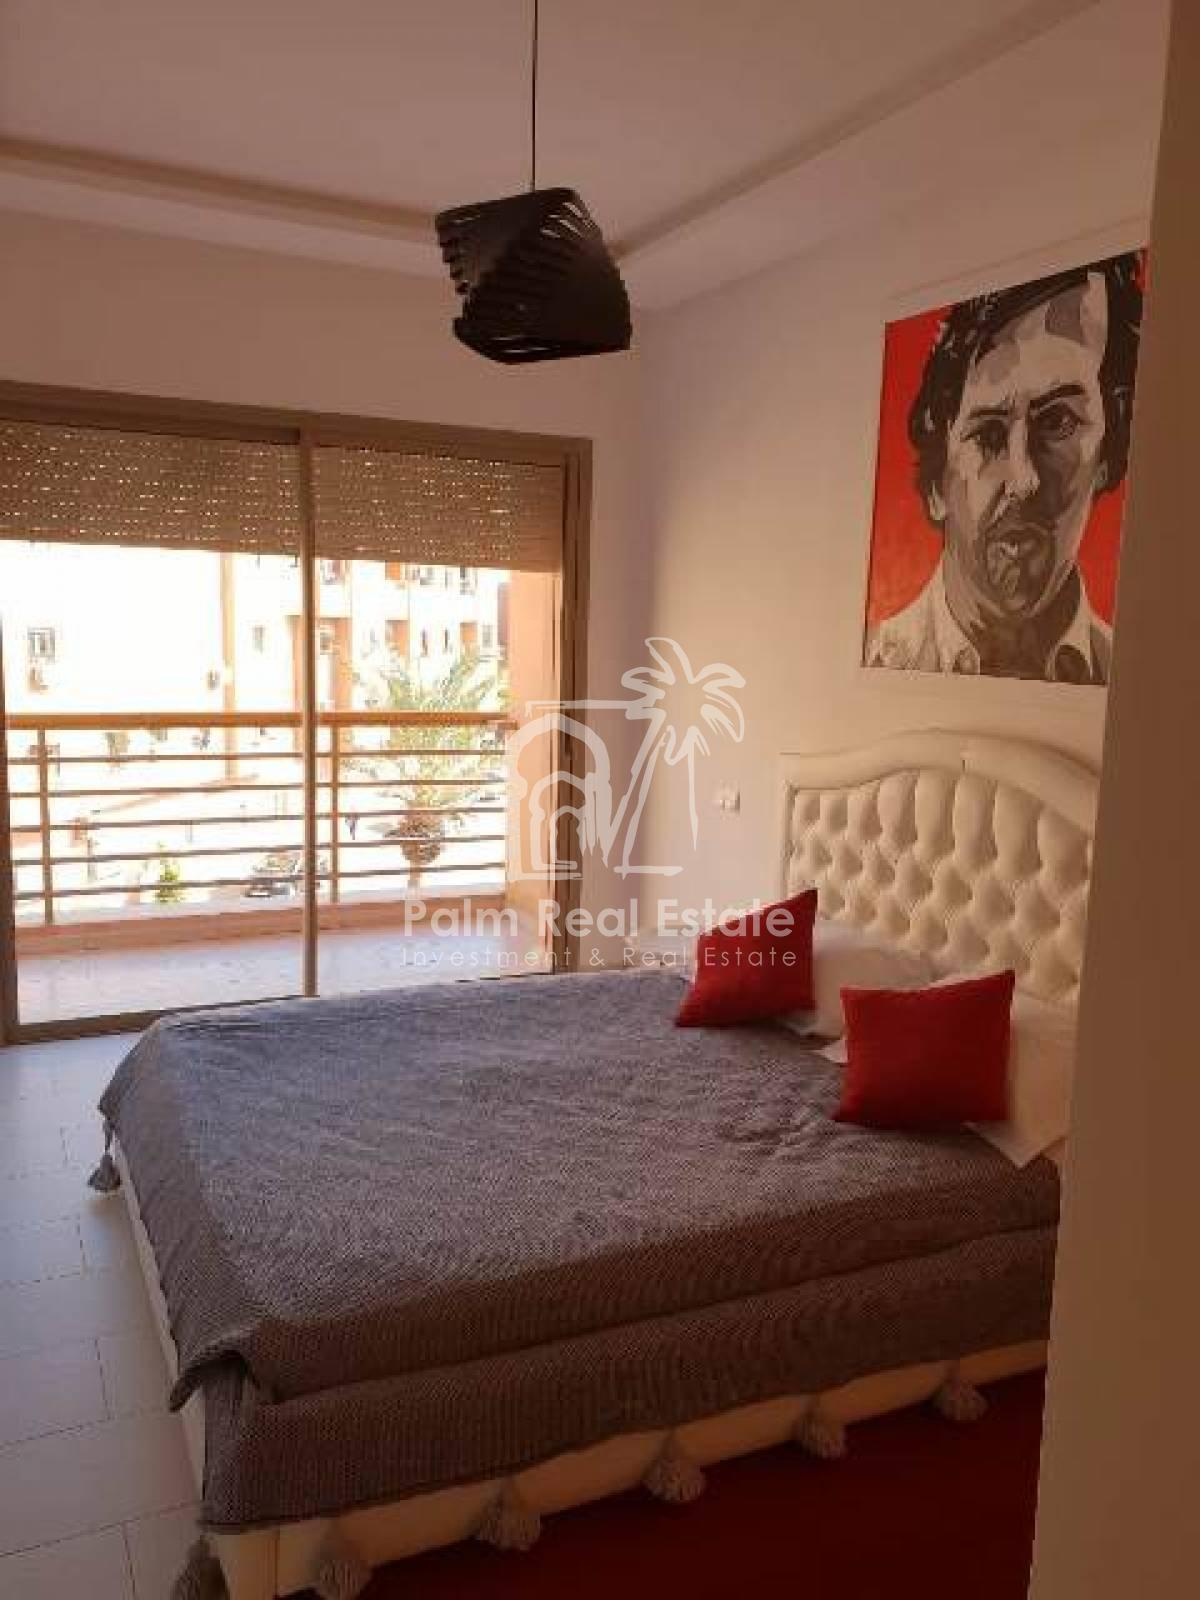 Location <strong>Appartement</strong> Marrakech Semlalia <strong>57 m2</strong>